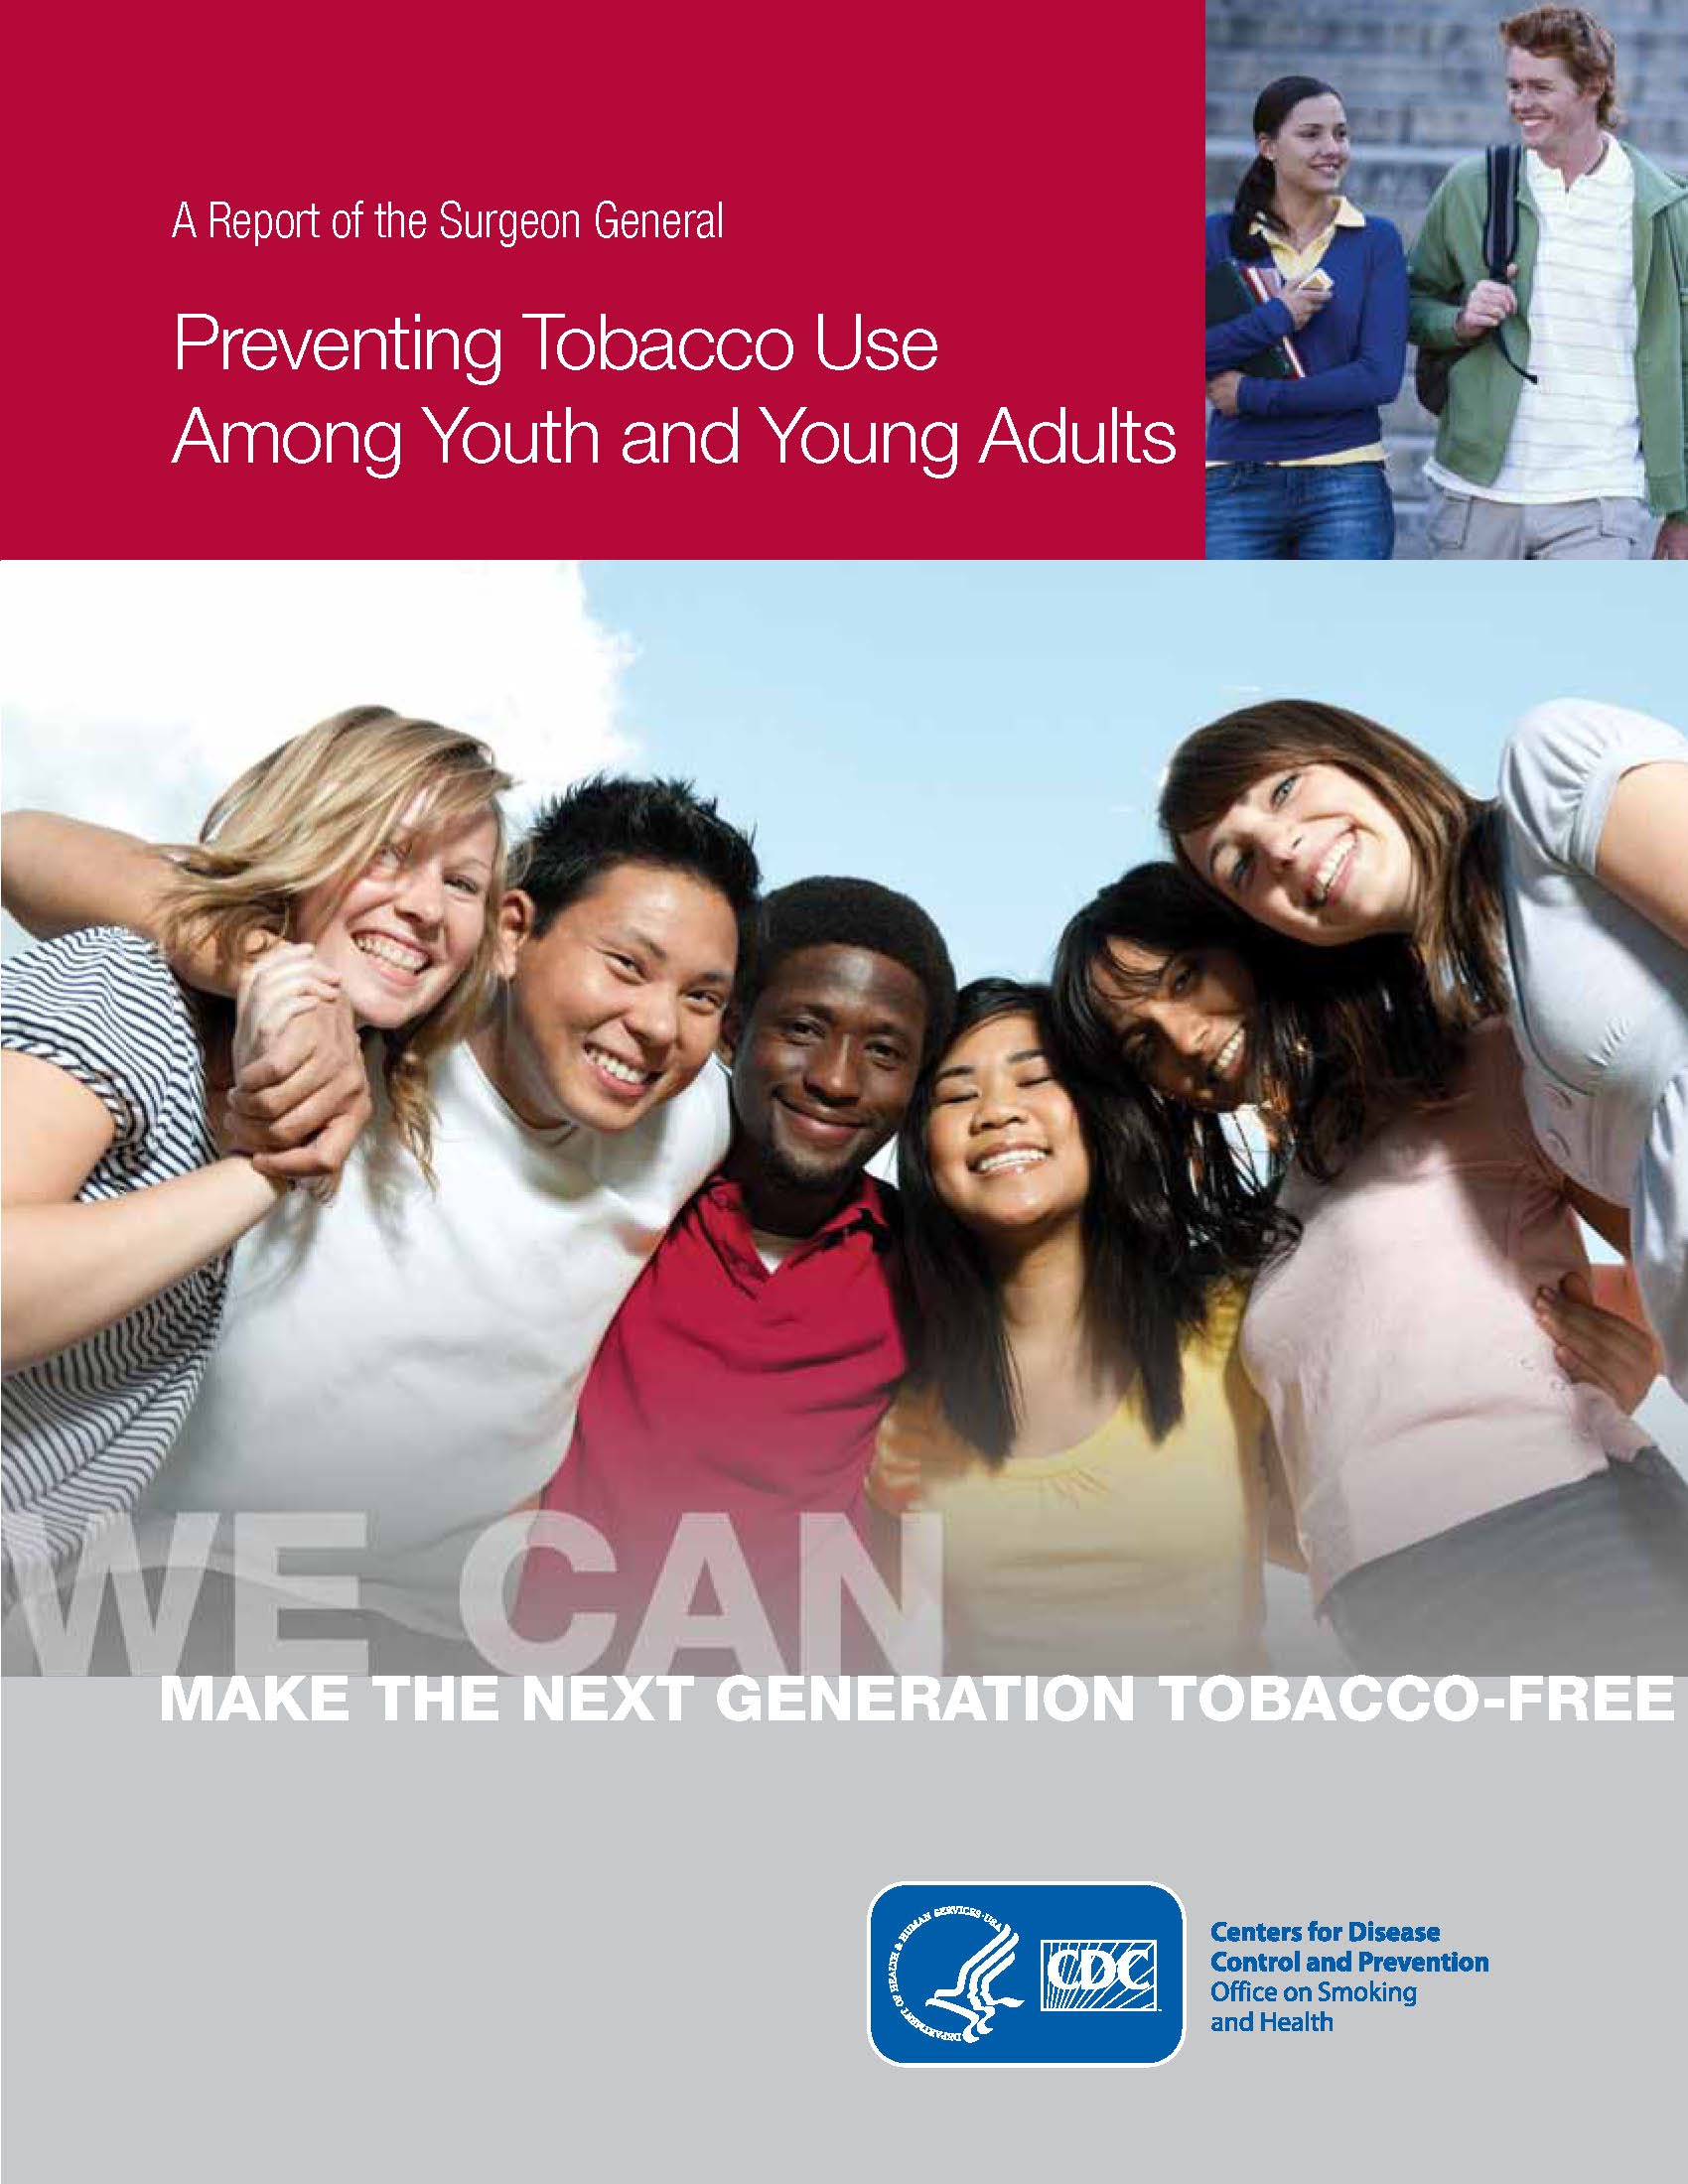 an introduction to the issue of cigarette smoking among young adults An introduction to the issue of cigarette smoking among young adults pages 2 words 1,165 view full essay more essays like this: cigarette smoking, issue of smoking cigarette, young adults and cigarette smoking not sure what i'd do without @kibin - alfredo alvarez.